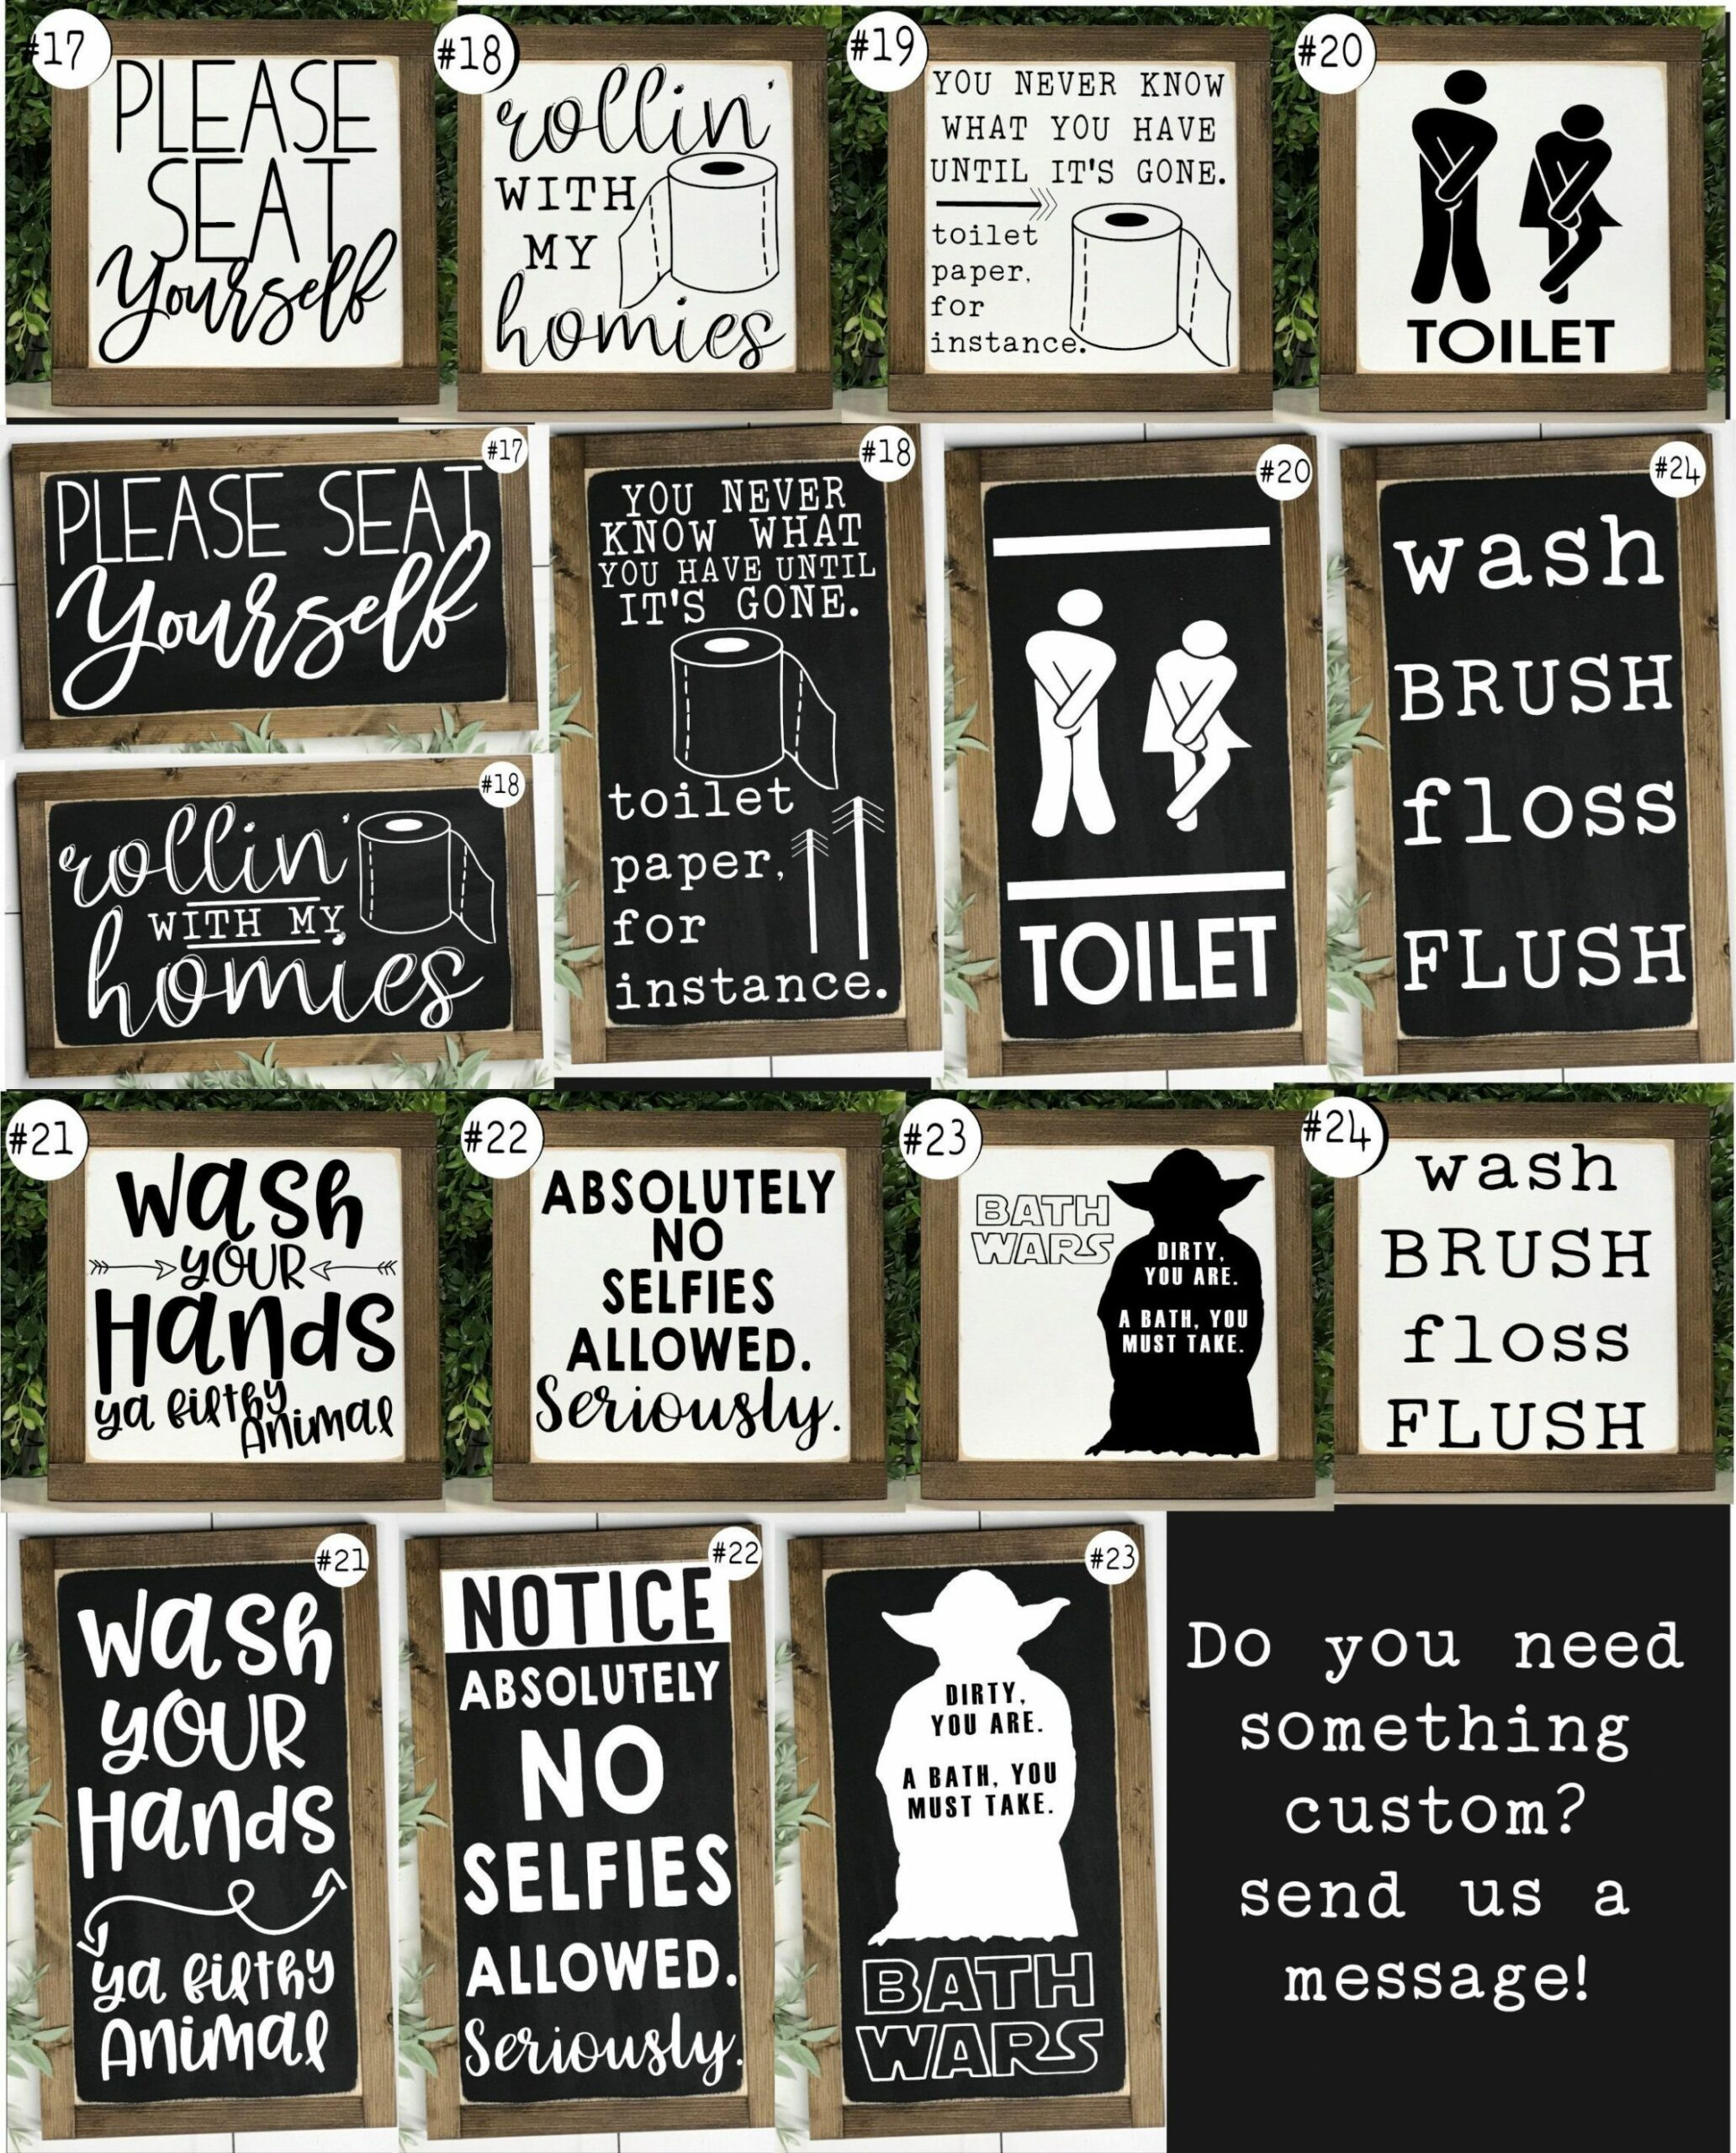 Funny Bathroom Signs Bathroom Wall Decor Kids Bathroom | Etsy ...